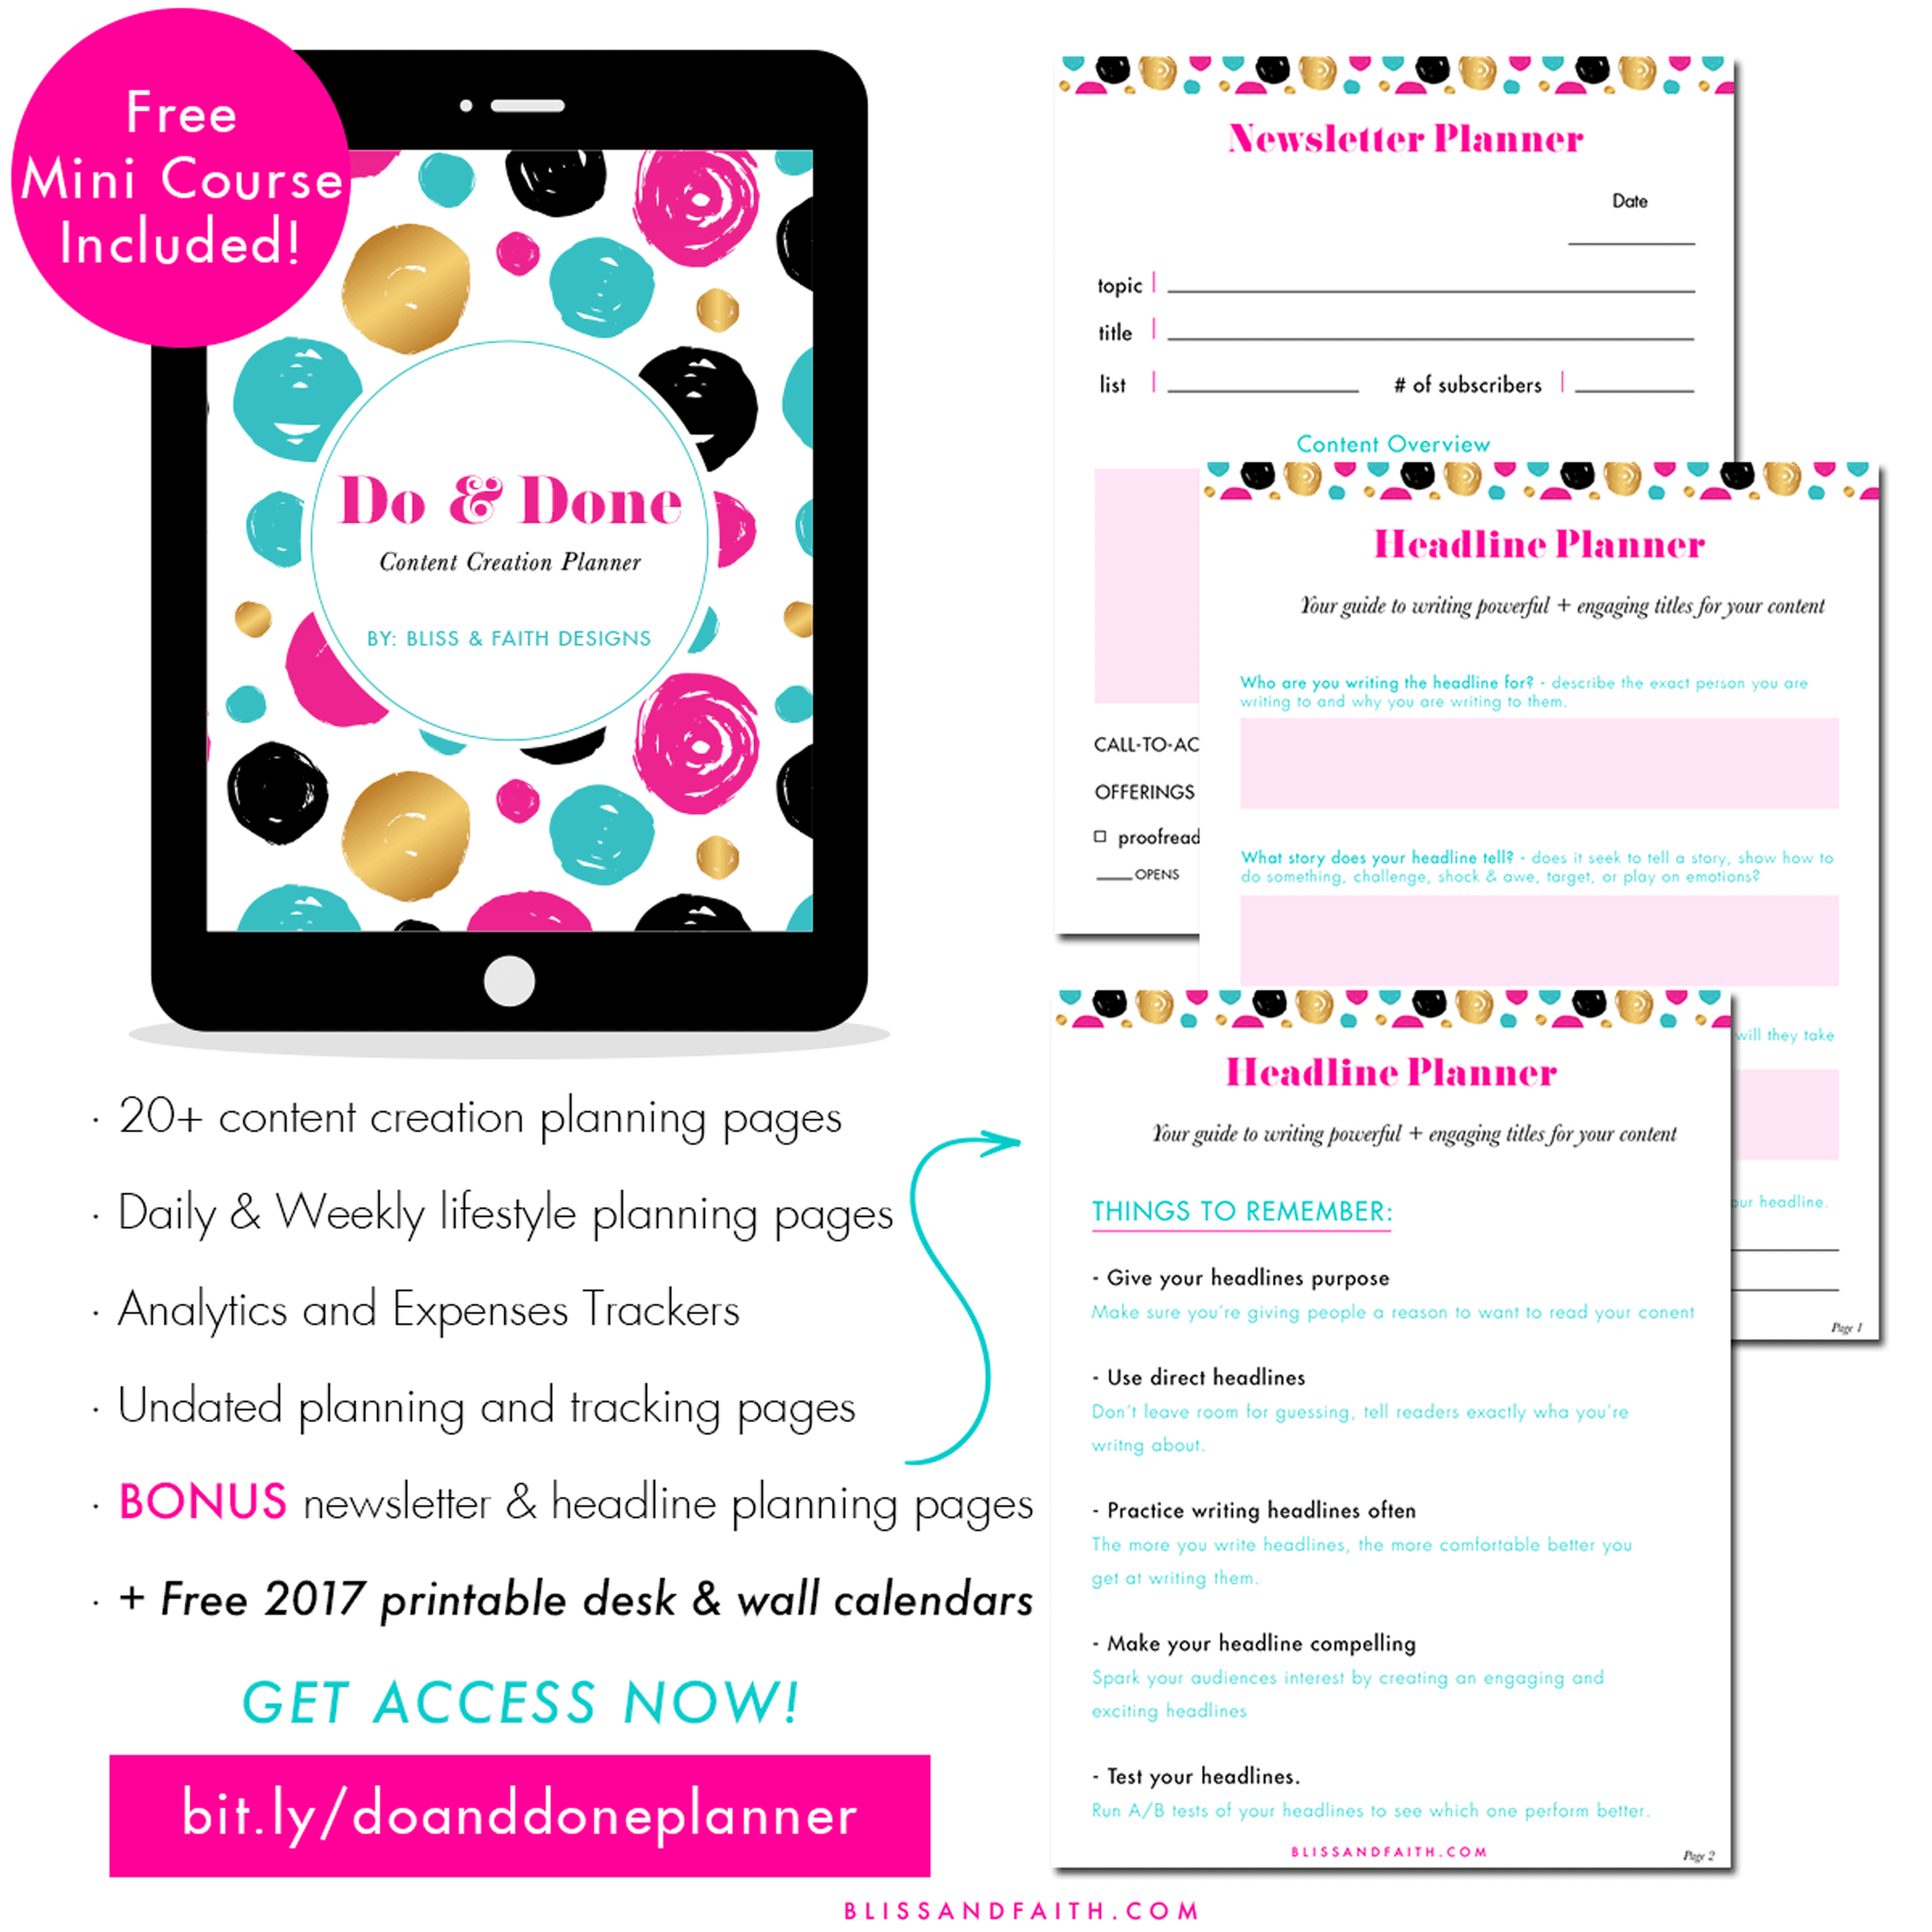 Do and Done Content Creation Planner | BlissandFaith.com